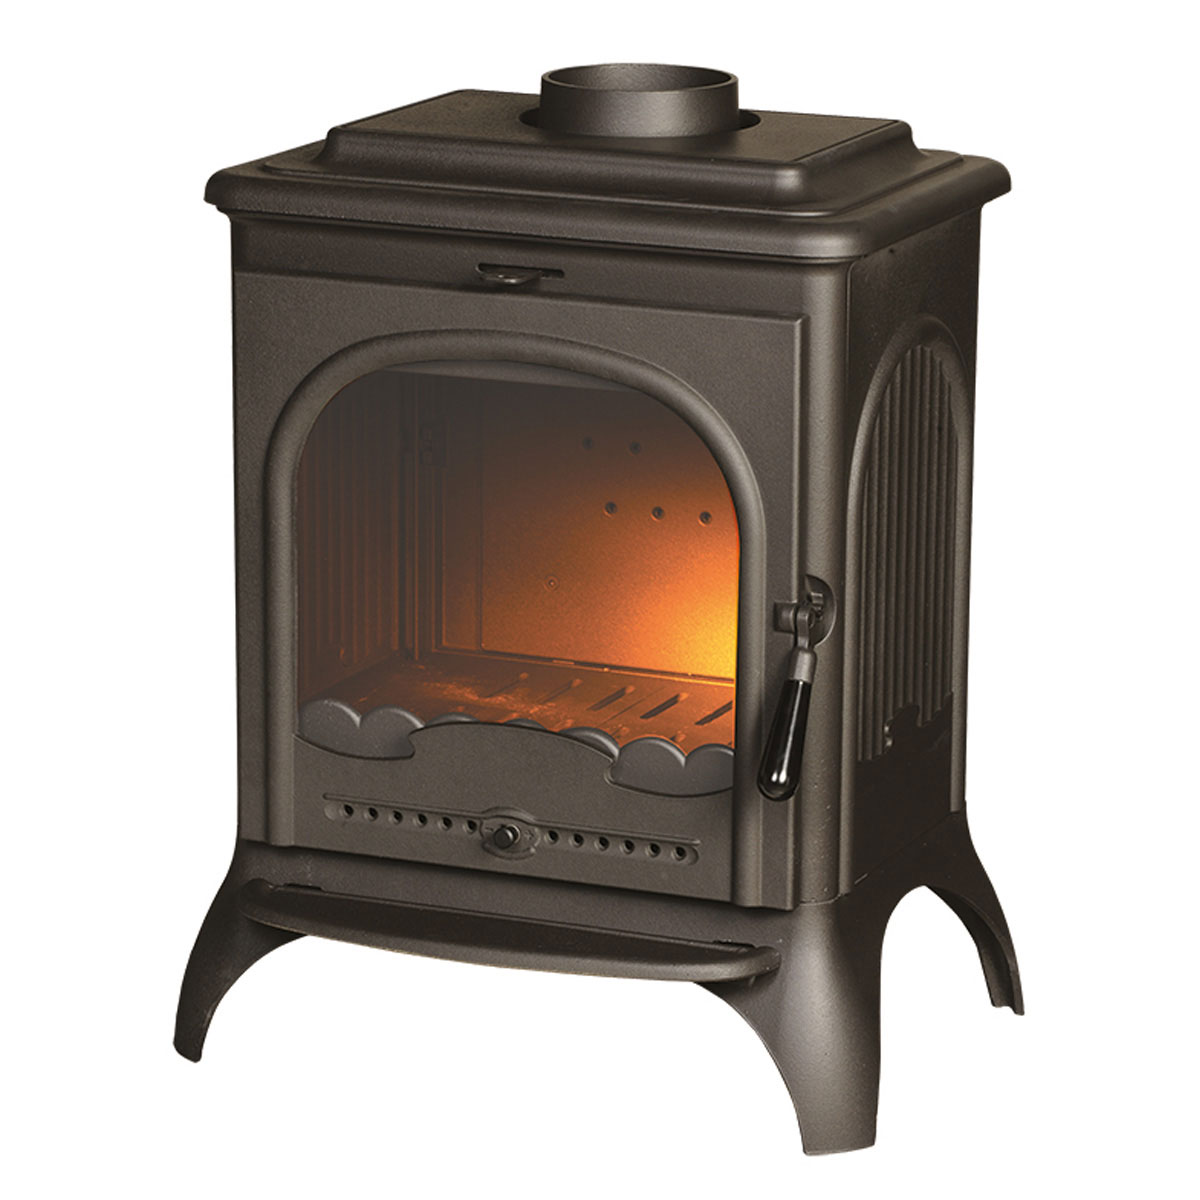 INVICTA FRANCE Wood Stove Seville 2 Anthracite